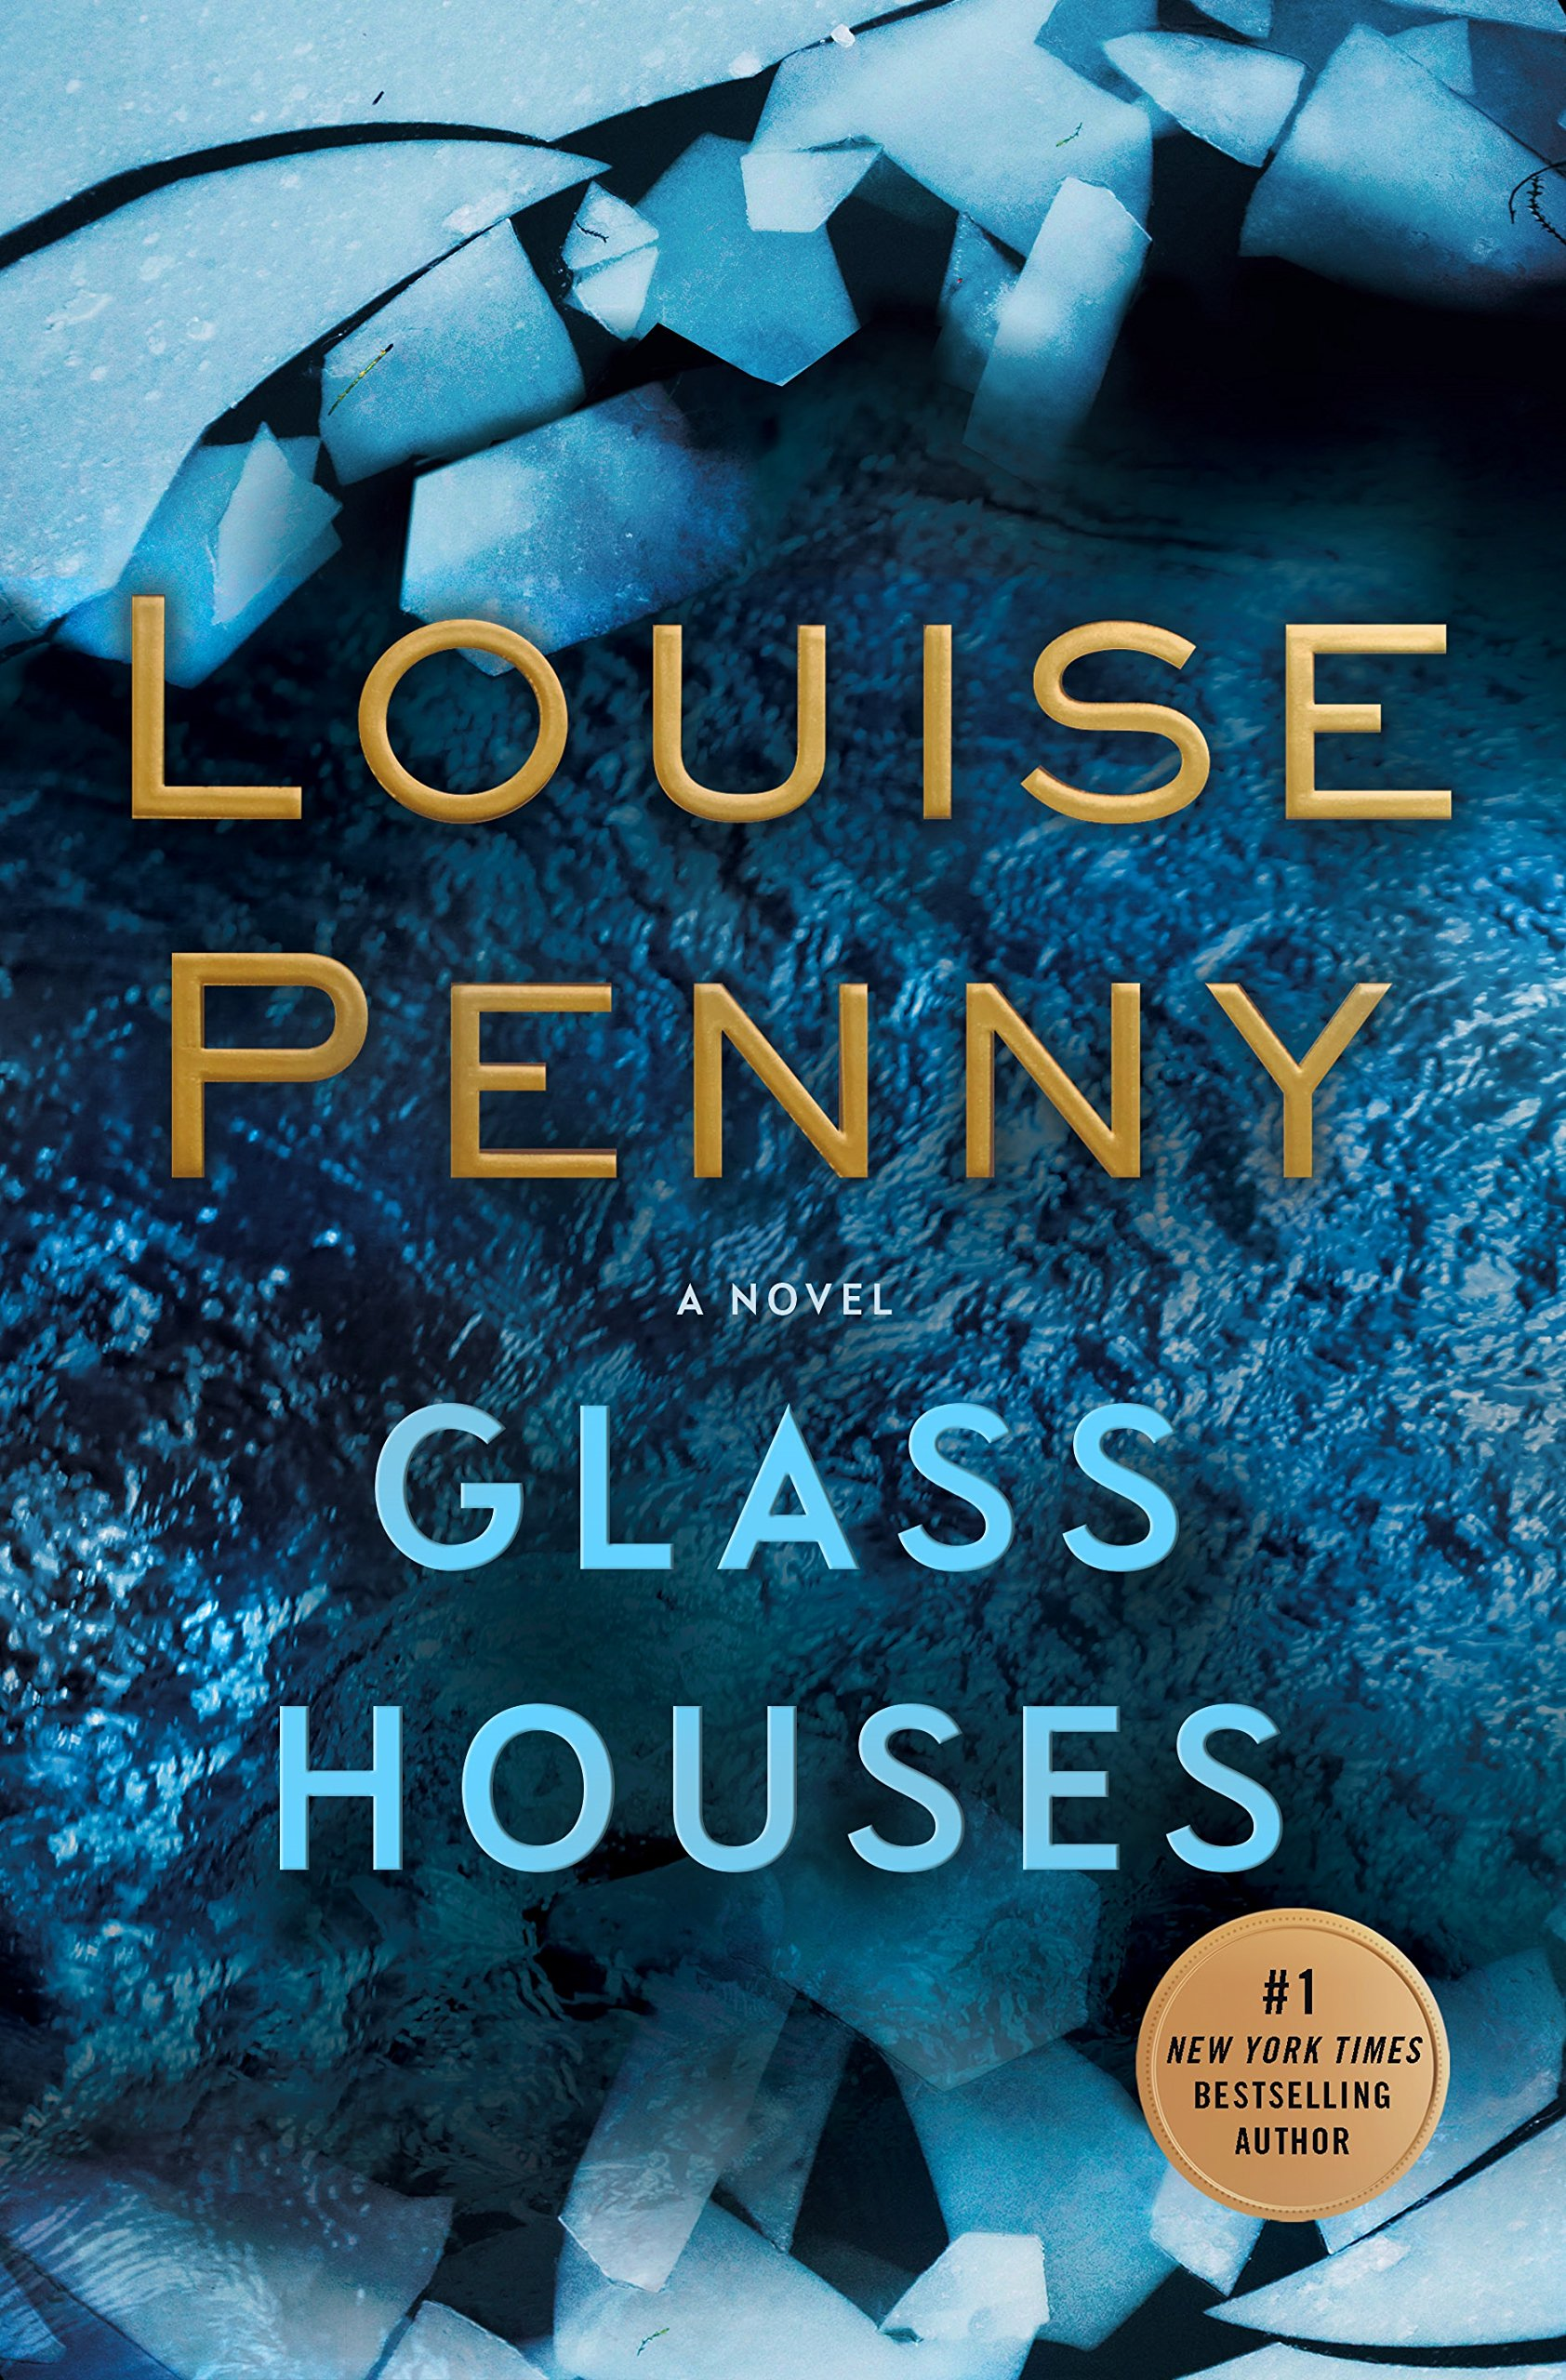 Glass Houses by Louise Penny (cover)